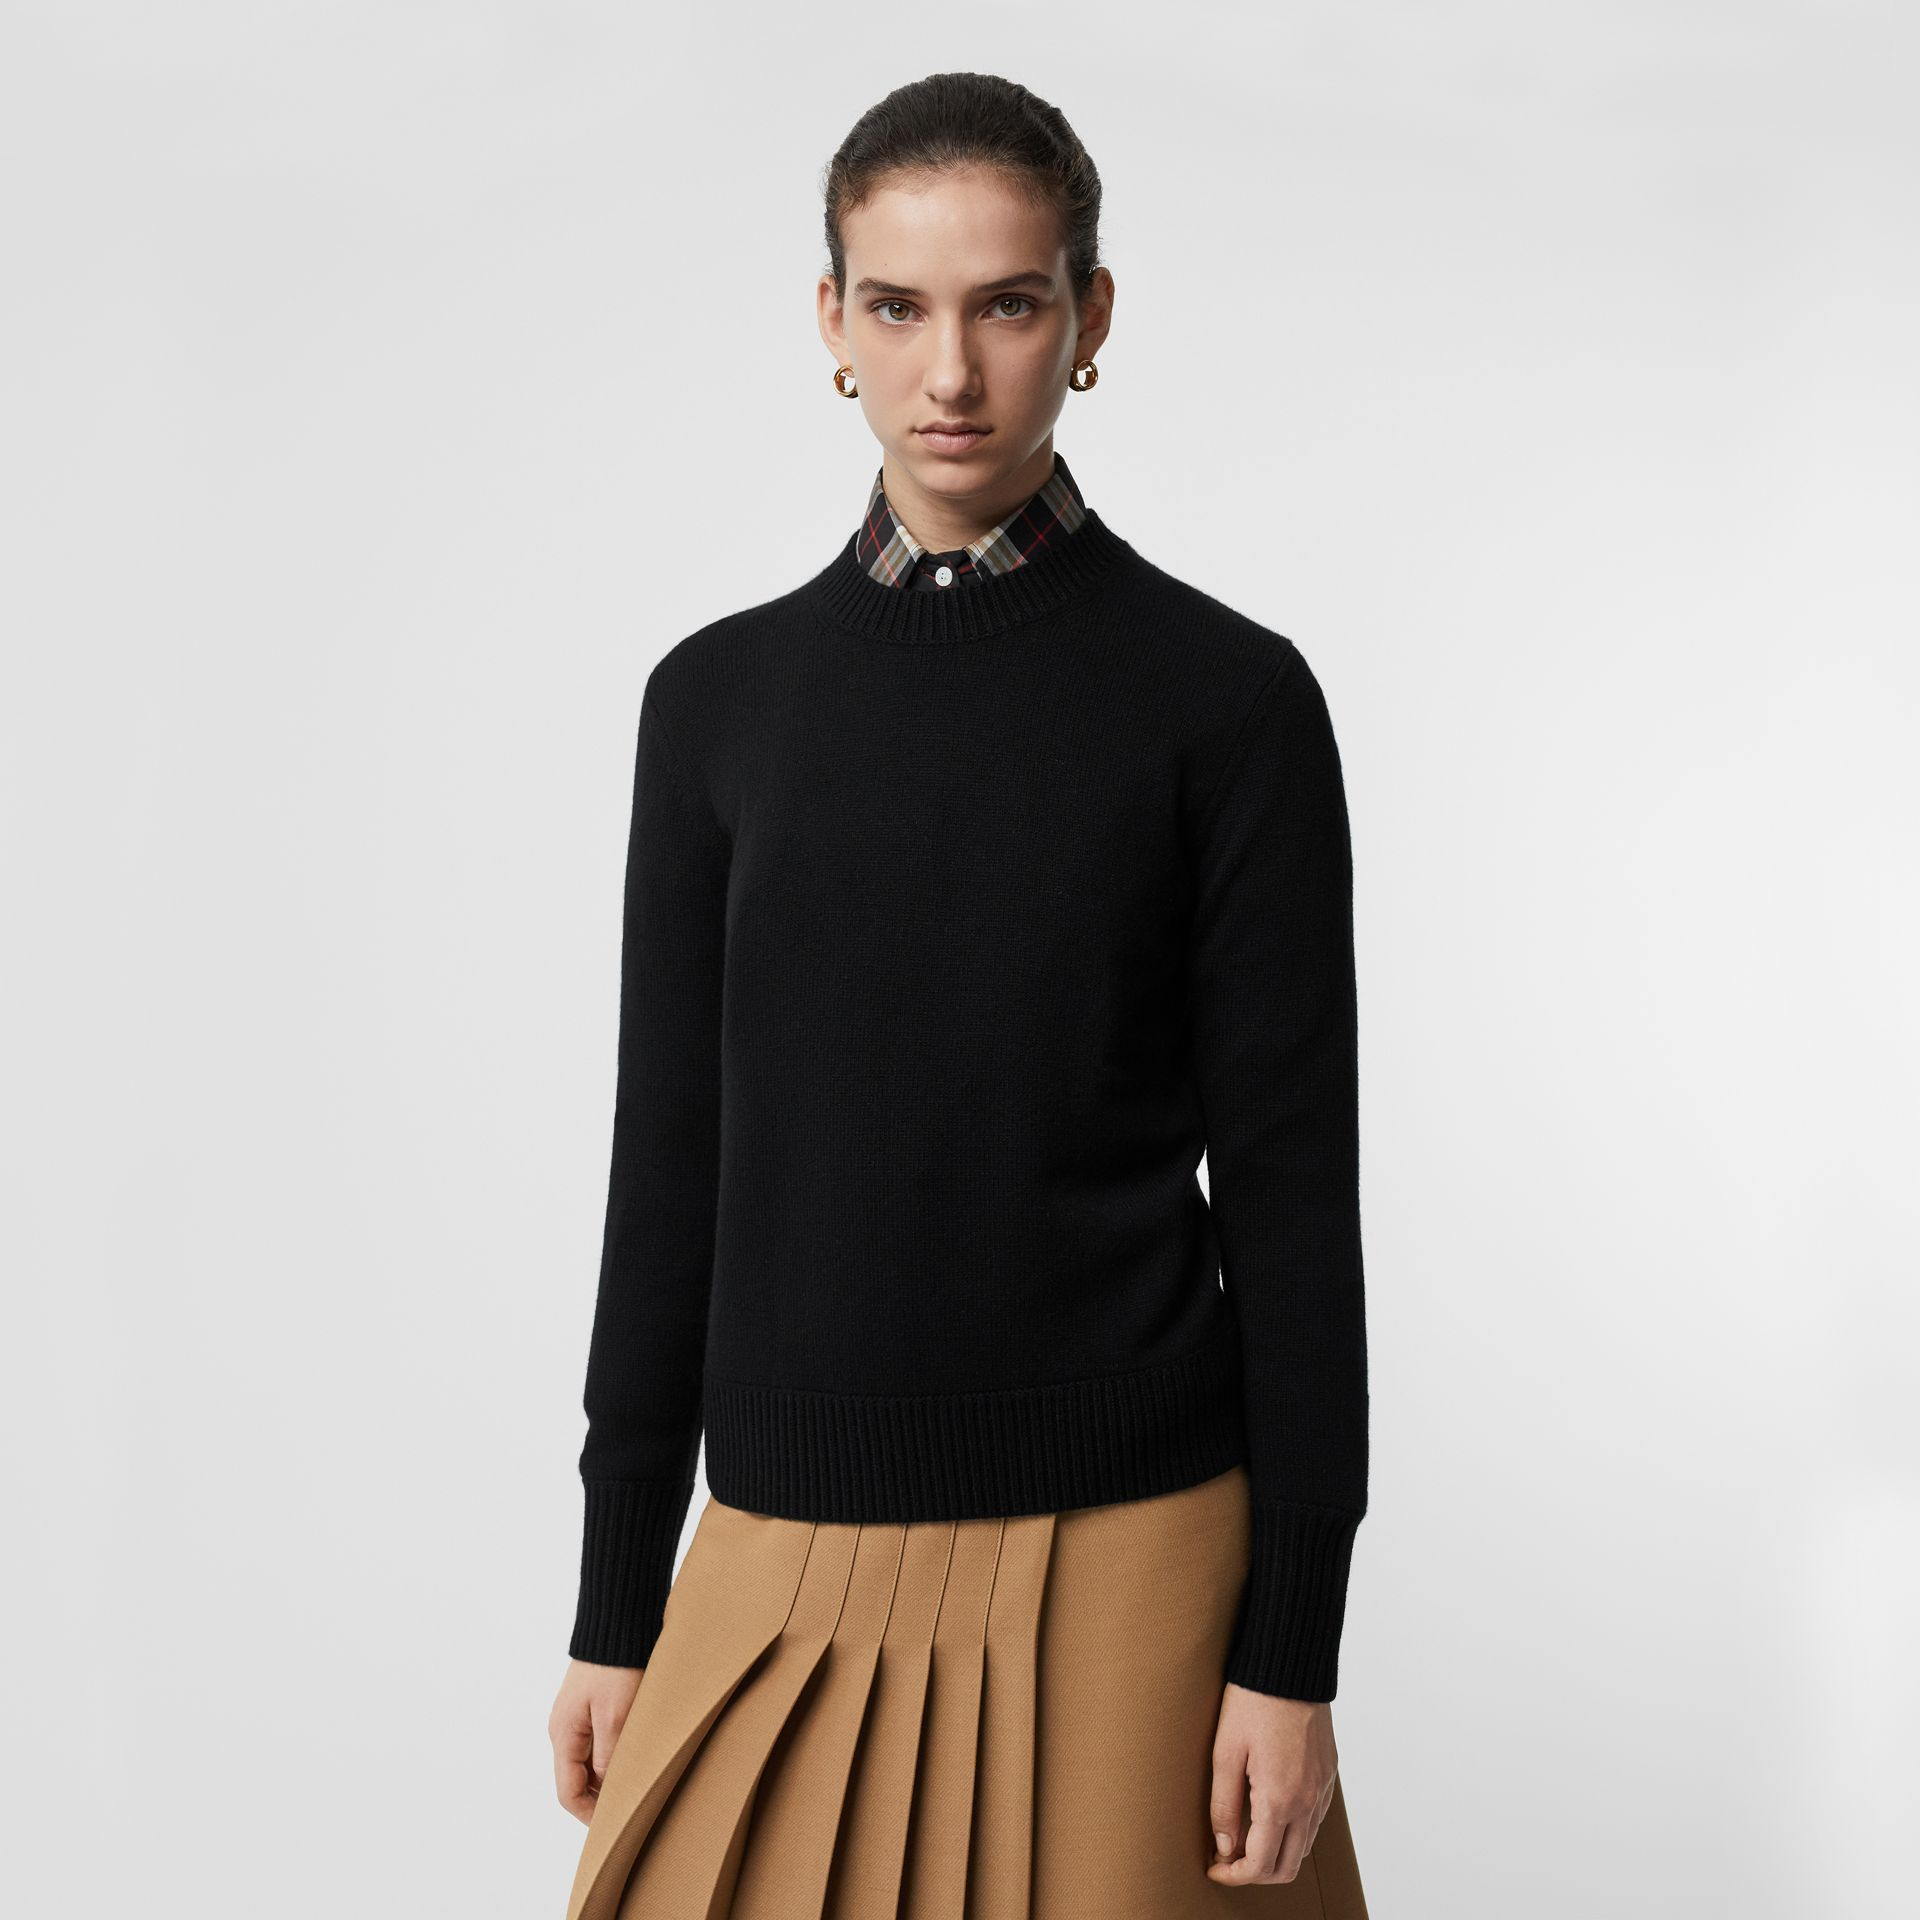 Embroidered Crest Cashmere Sweater in Black - Women | Burberry Singapore - gallery image 2